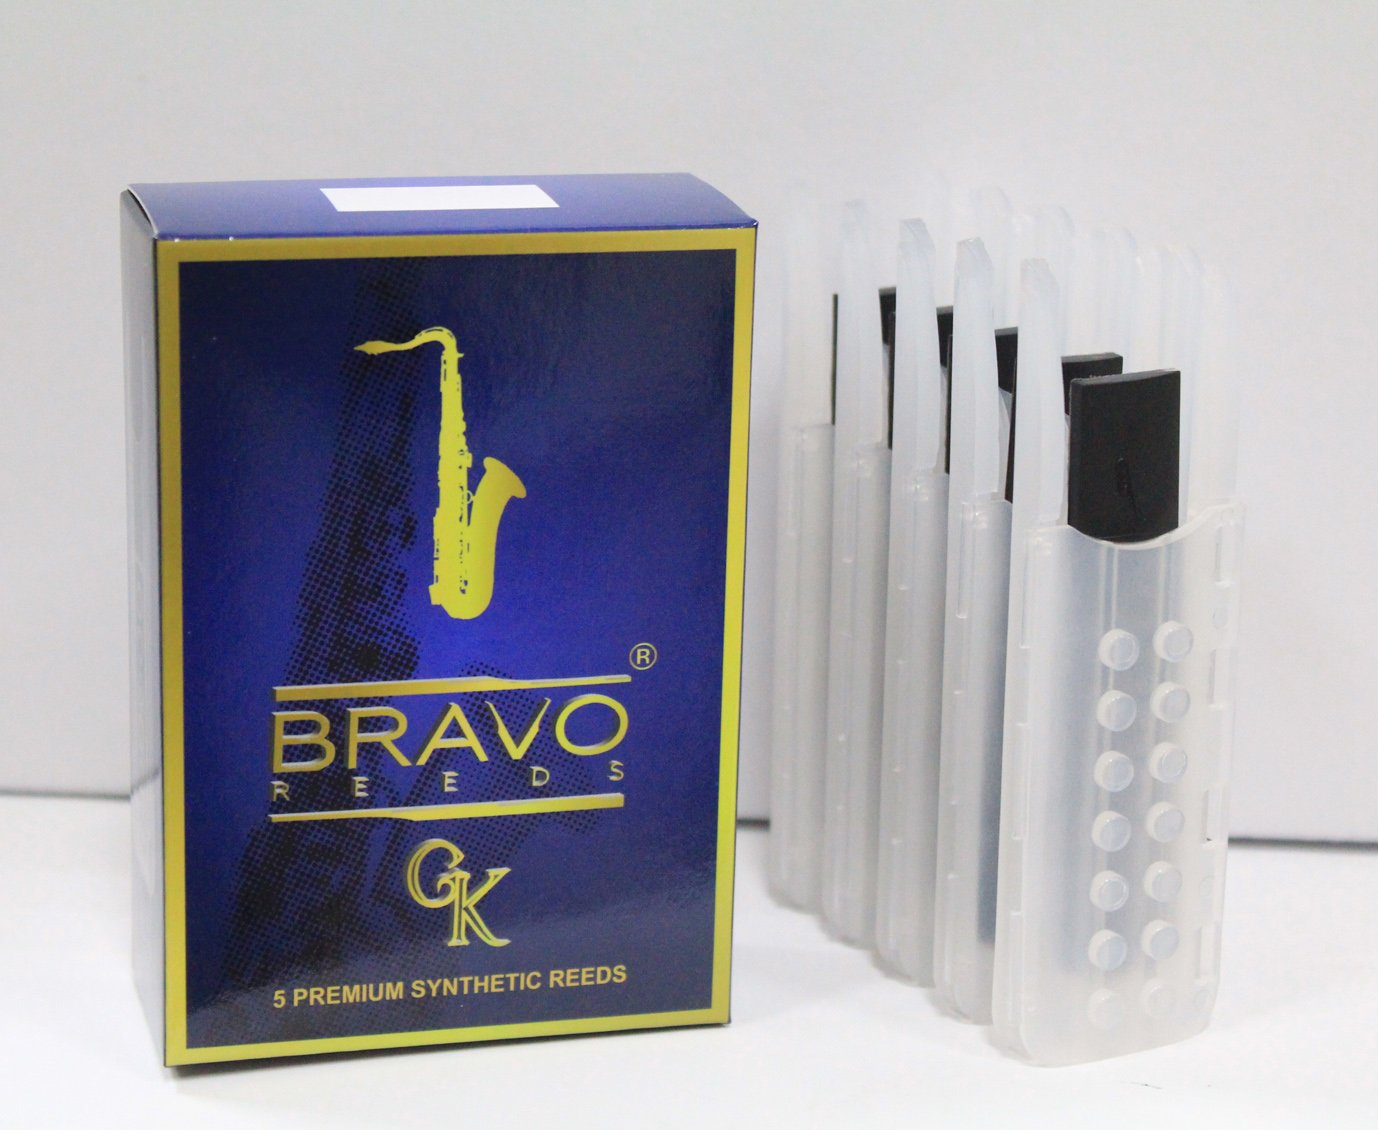 Bravo Gk Premium Synthetic Reeds for Tenor Sax: Strength 3.0. Box of 5, $35, Designed in California